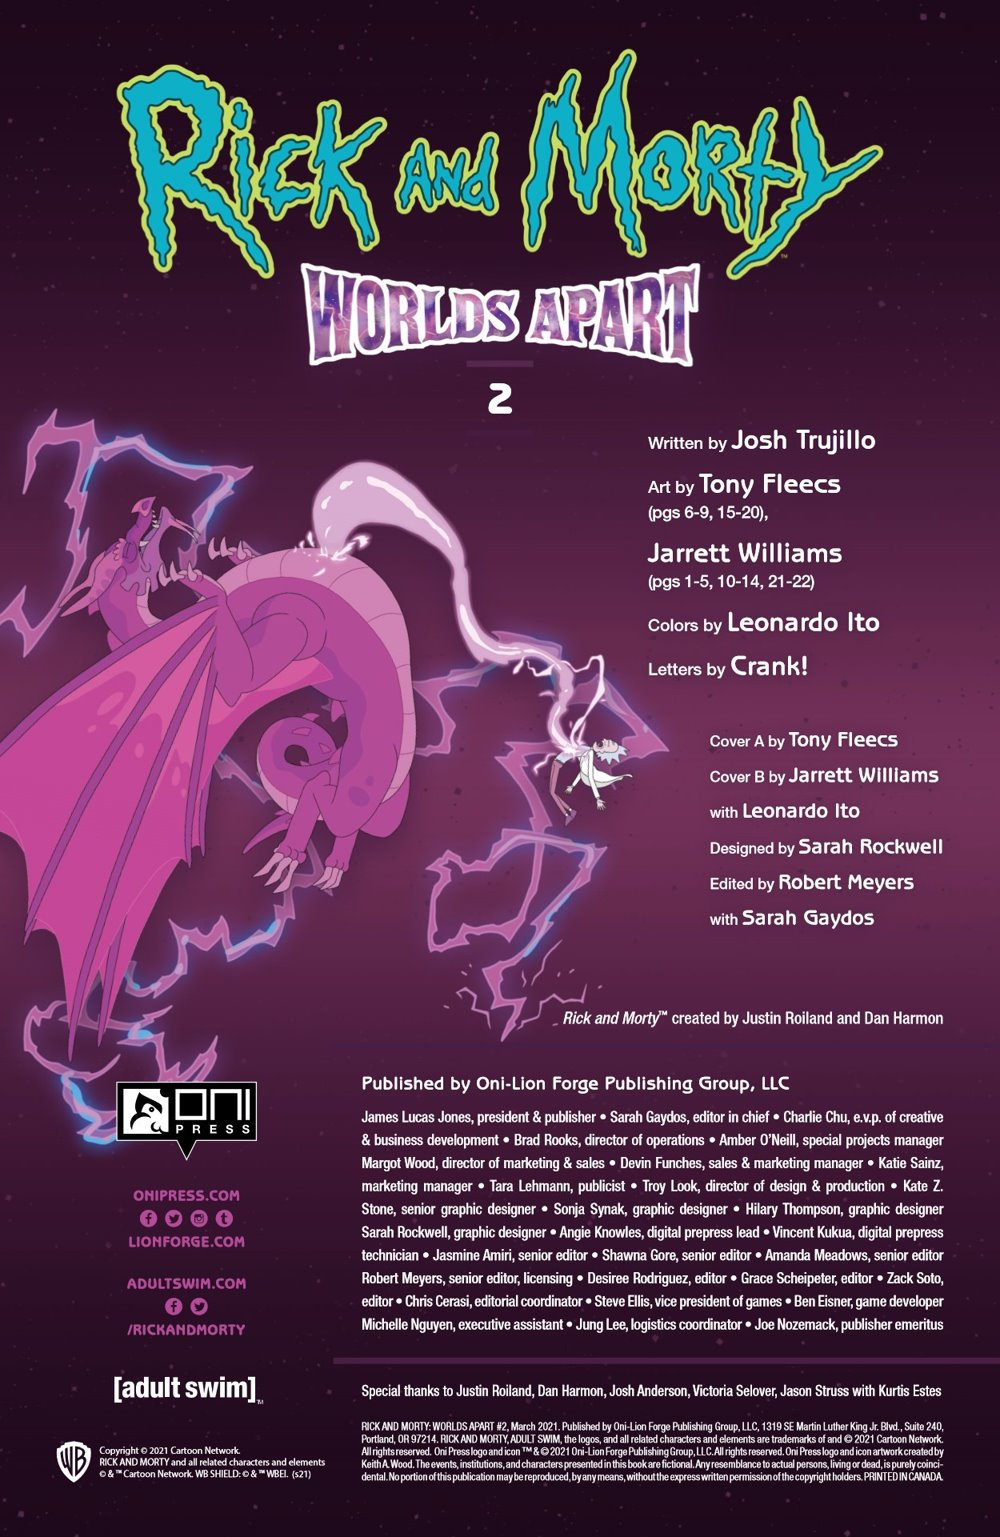 RICKMORTY-WORLDSAPART-2-REFERENCE-03 ComicList Previews: RICK AND MORTY WORLDS APART #2